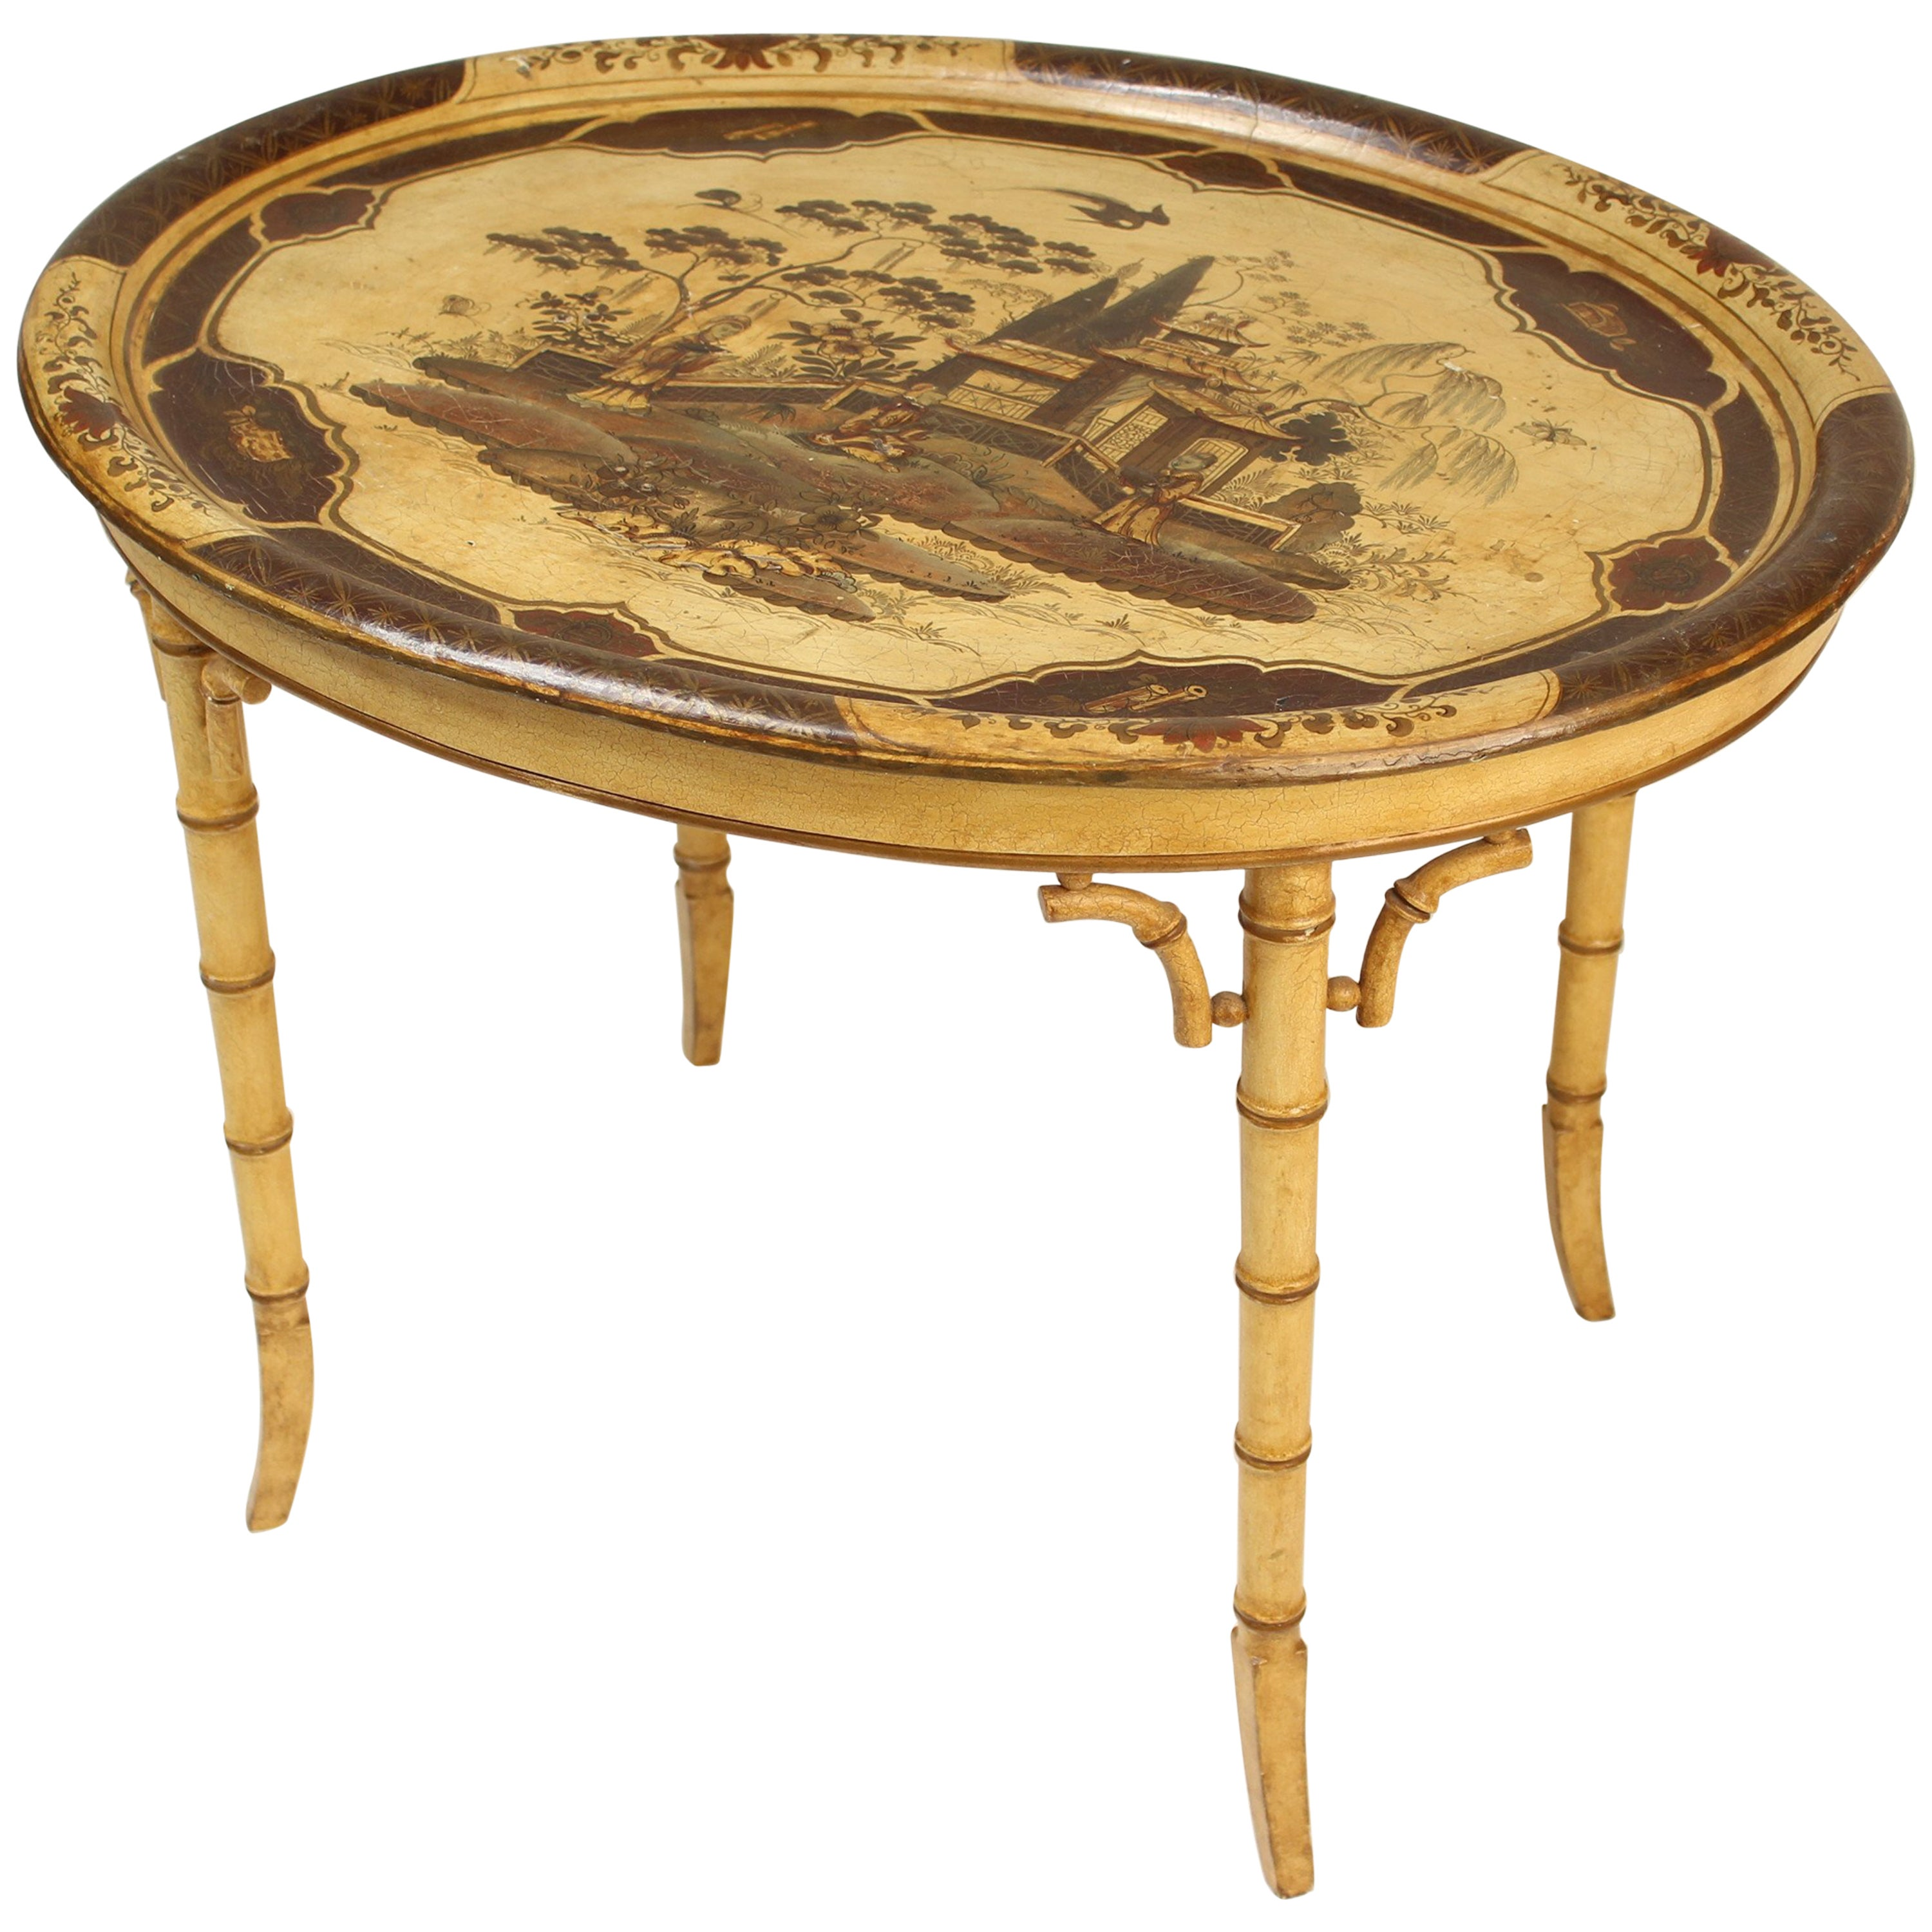 English Regency Style Chinoiserie Decorated Paper Mache Tray Table